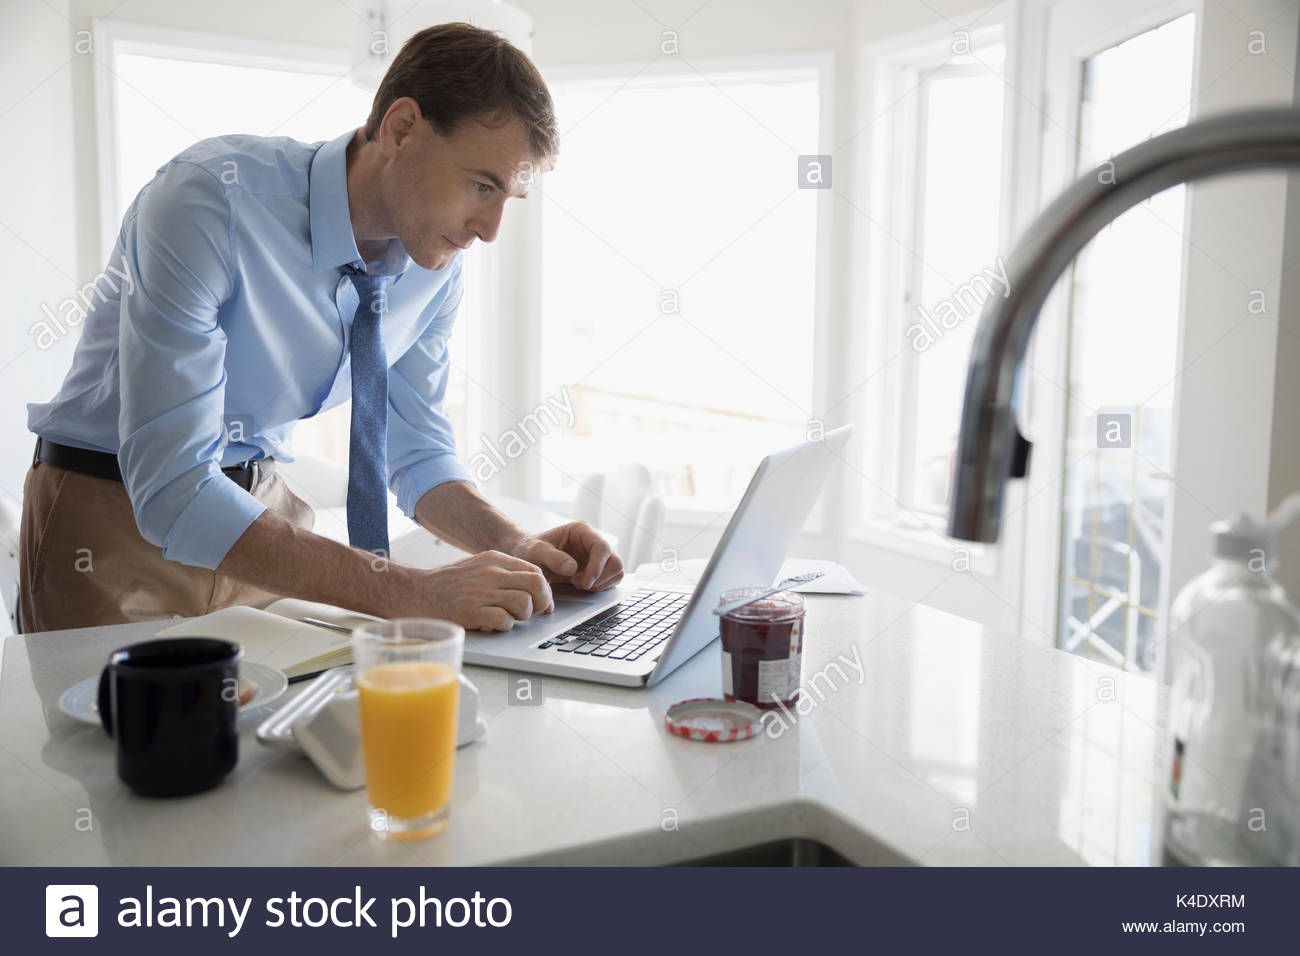 Businessman working at laptop in morning breakfast kitchen - Stock Image